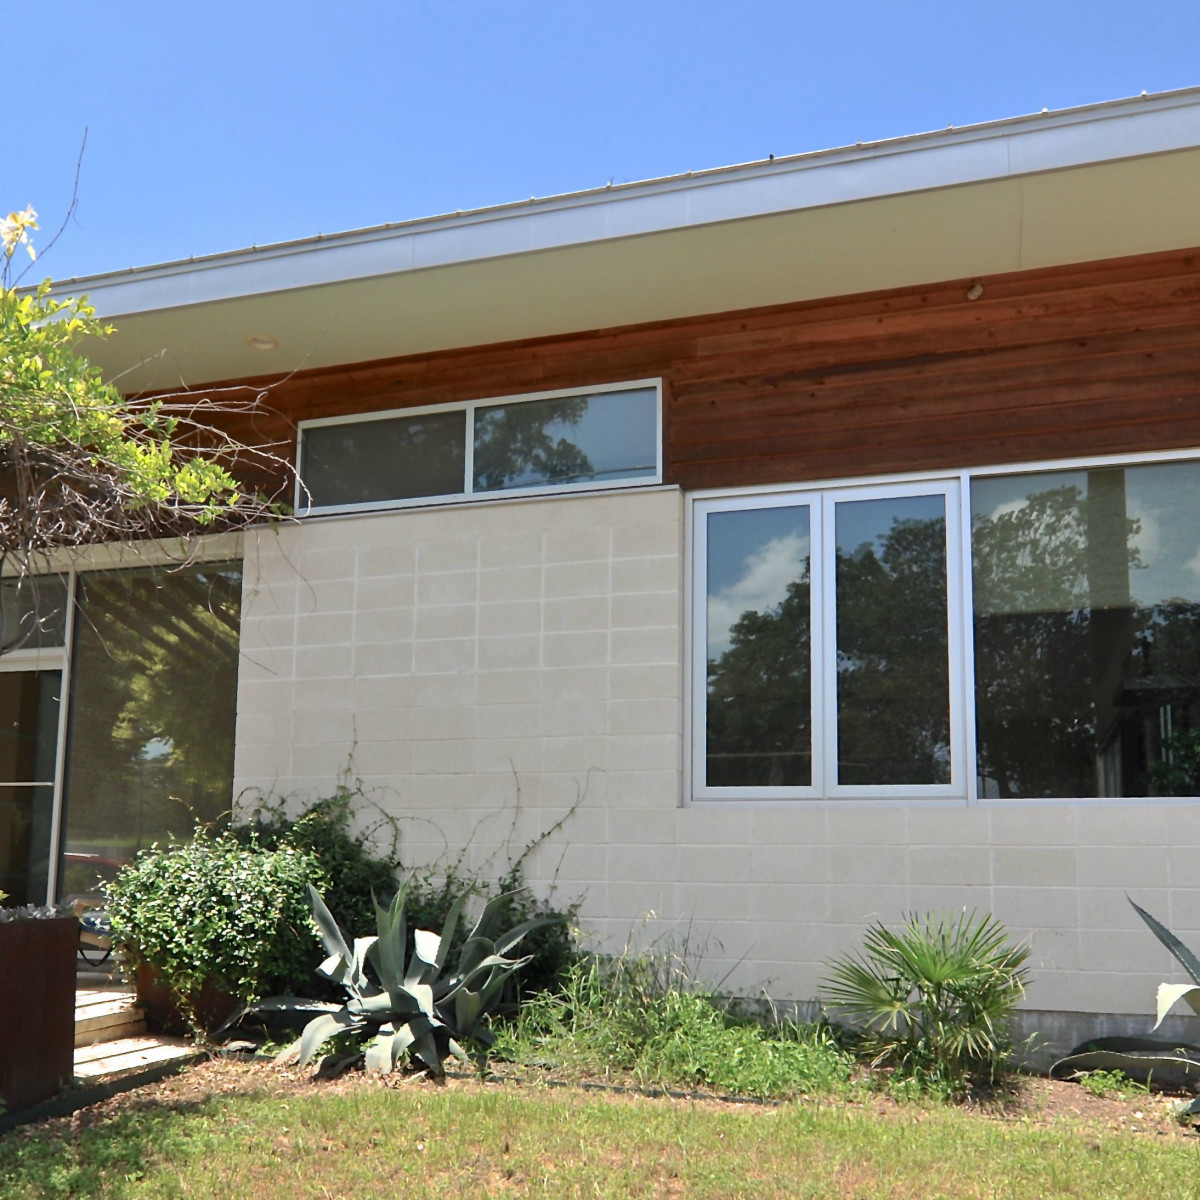 Austin home house 1011 E. 15th St. 78702 2015 exterior 2